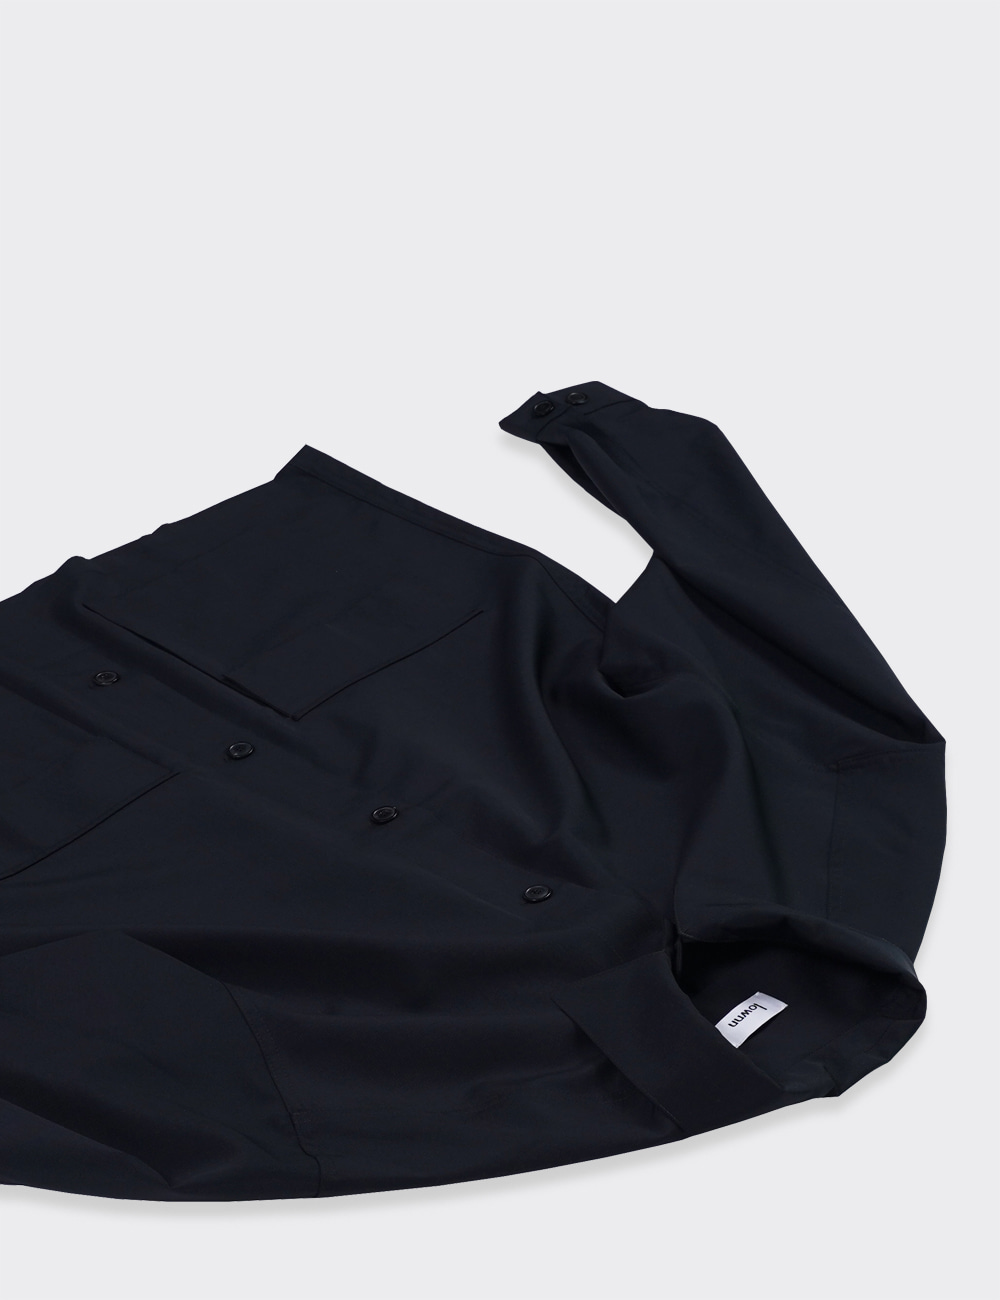 lownn : DOUBLE POCKET SHIRTS (BLACK)